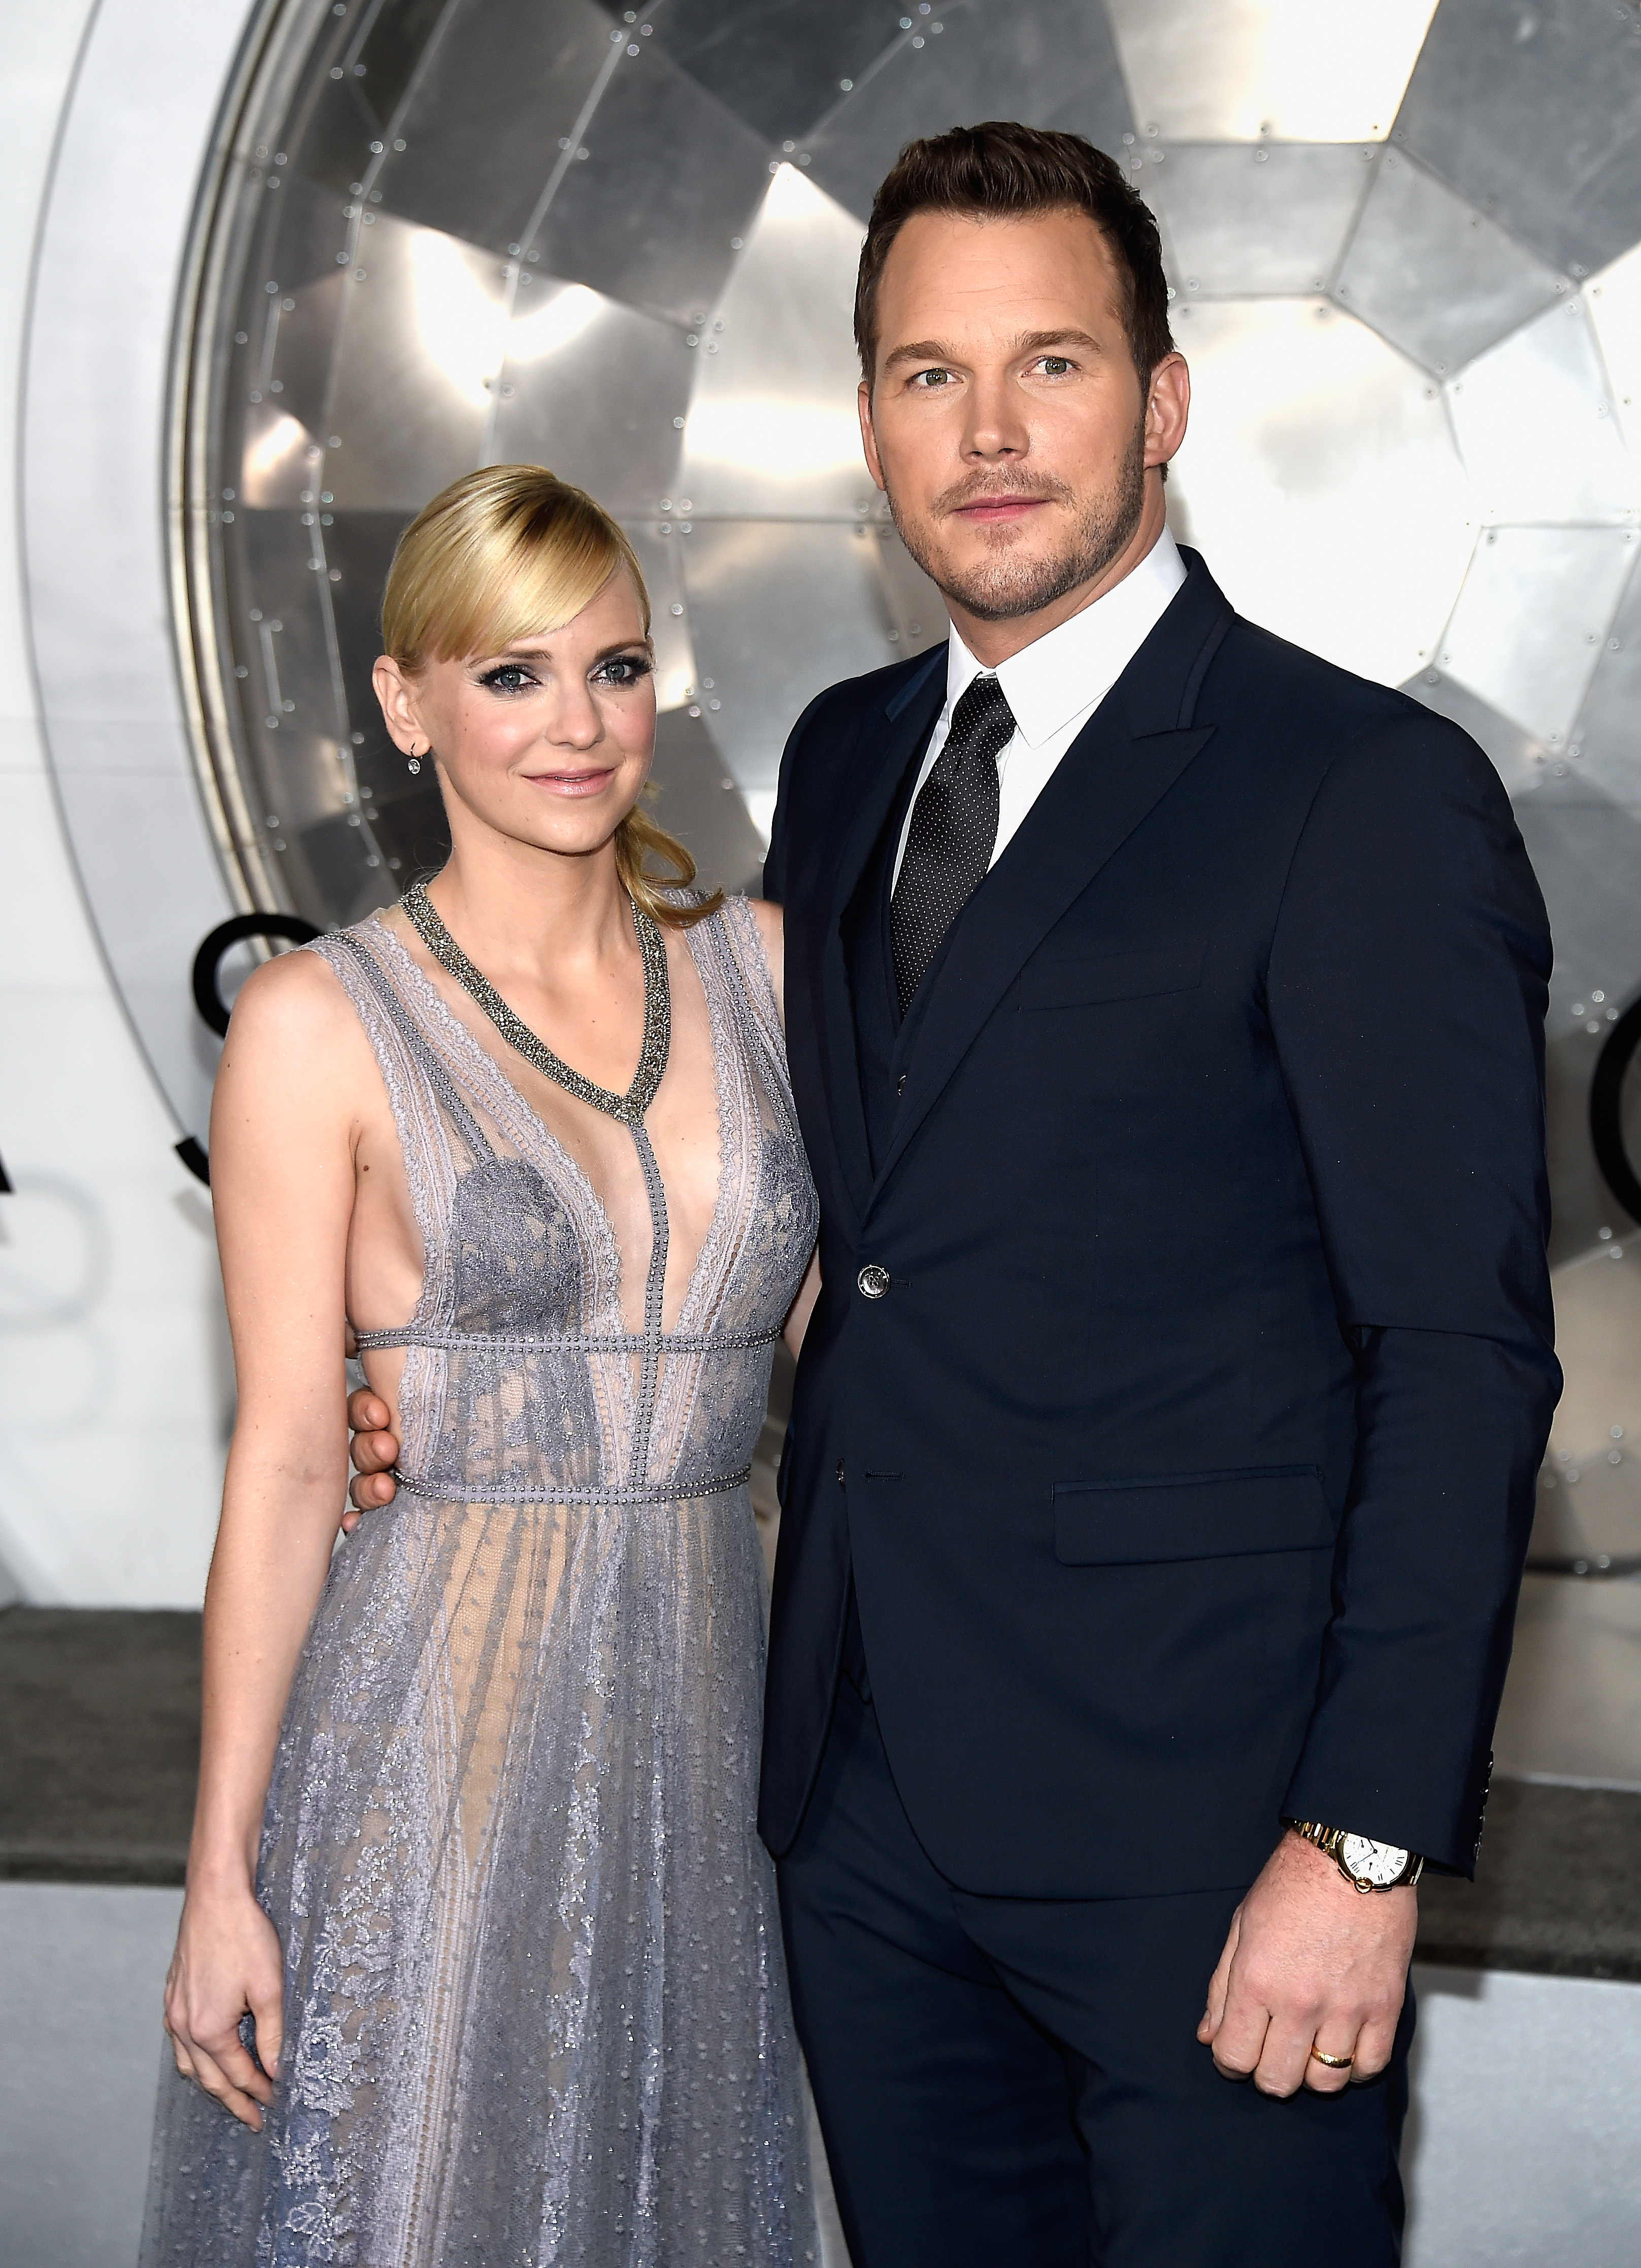 Anna Faris and Chris Pratt attend the premiere of Columbia Pictures' 'Passengers' at Regency Village Theatre on December 14, 2016 in Westwood, Calif.